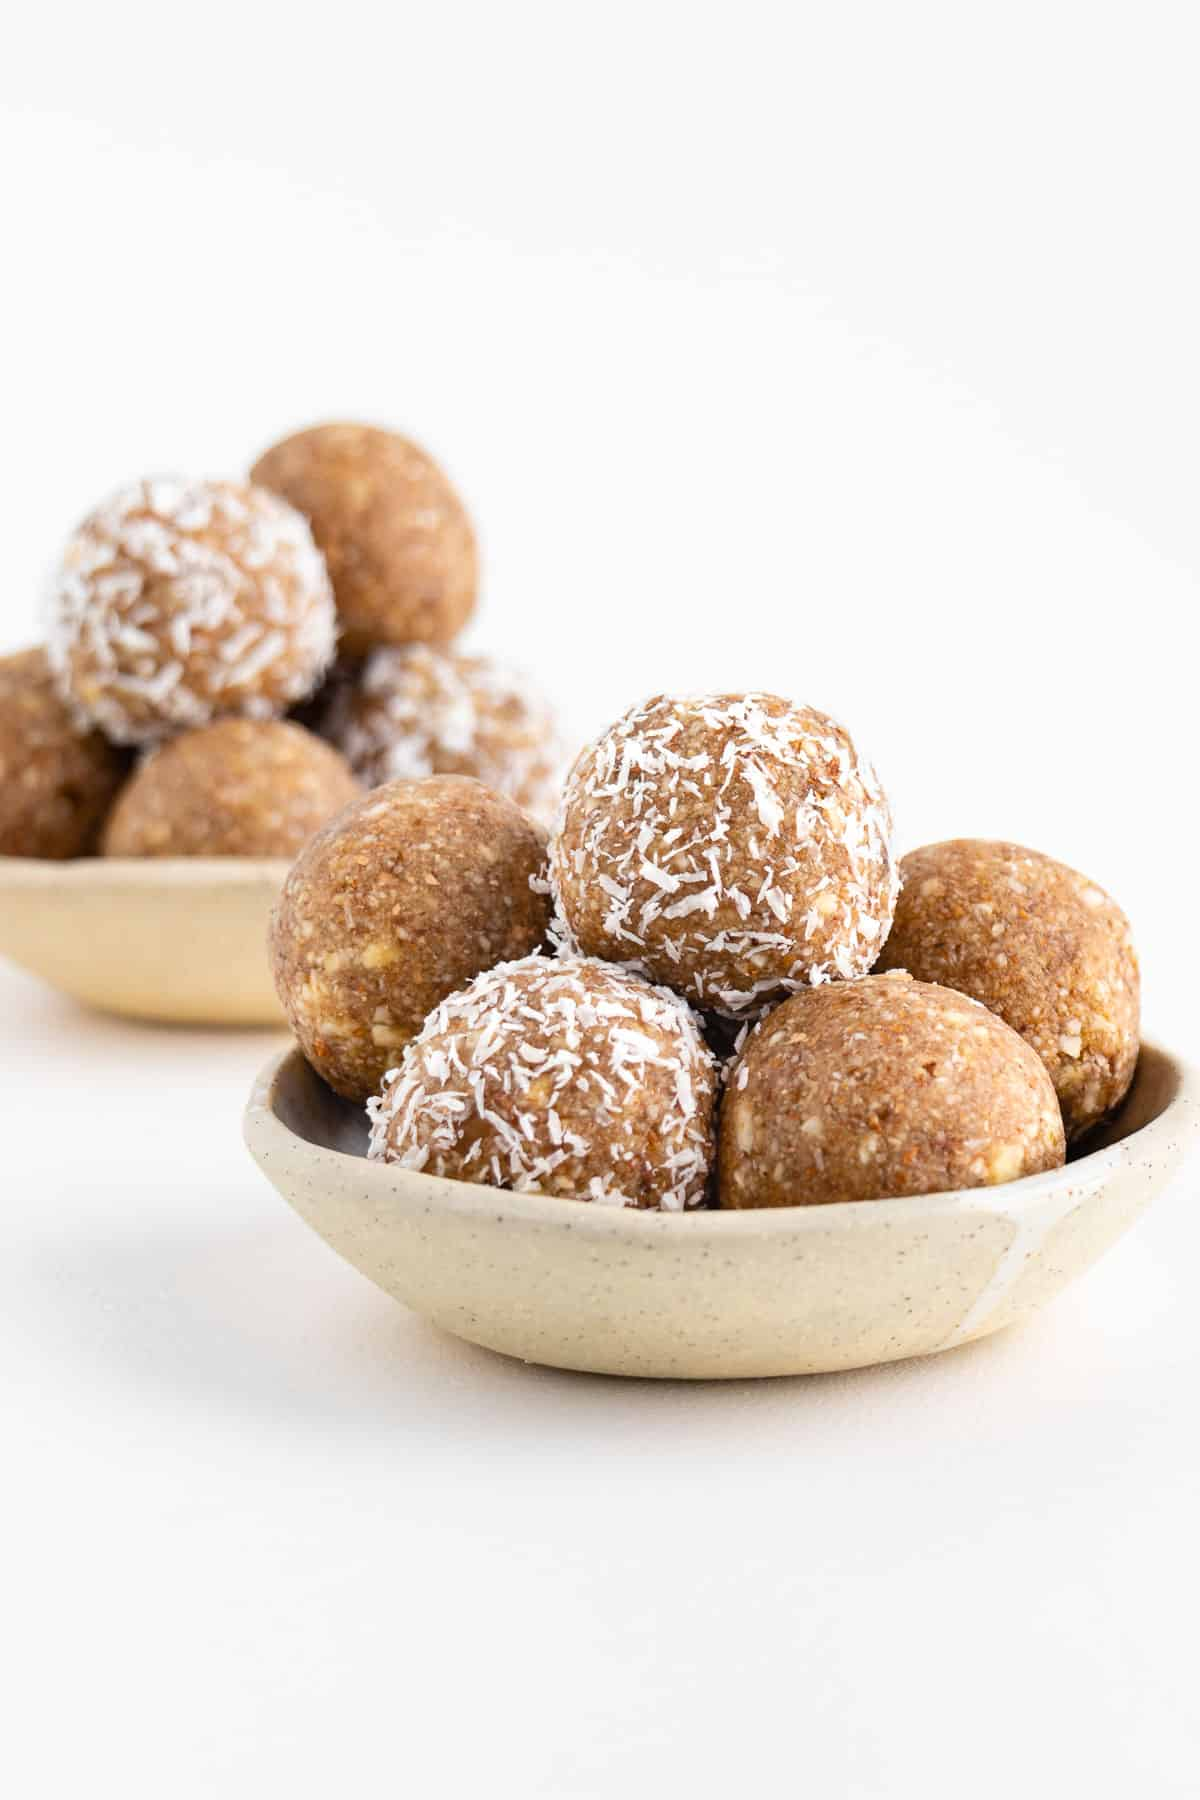 two ceramic bowls filled with coconut almond bliss balls